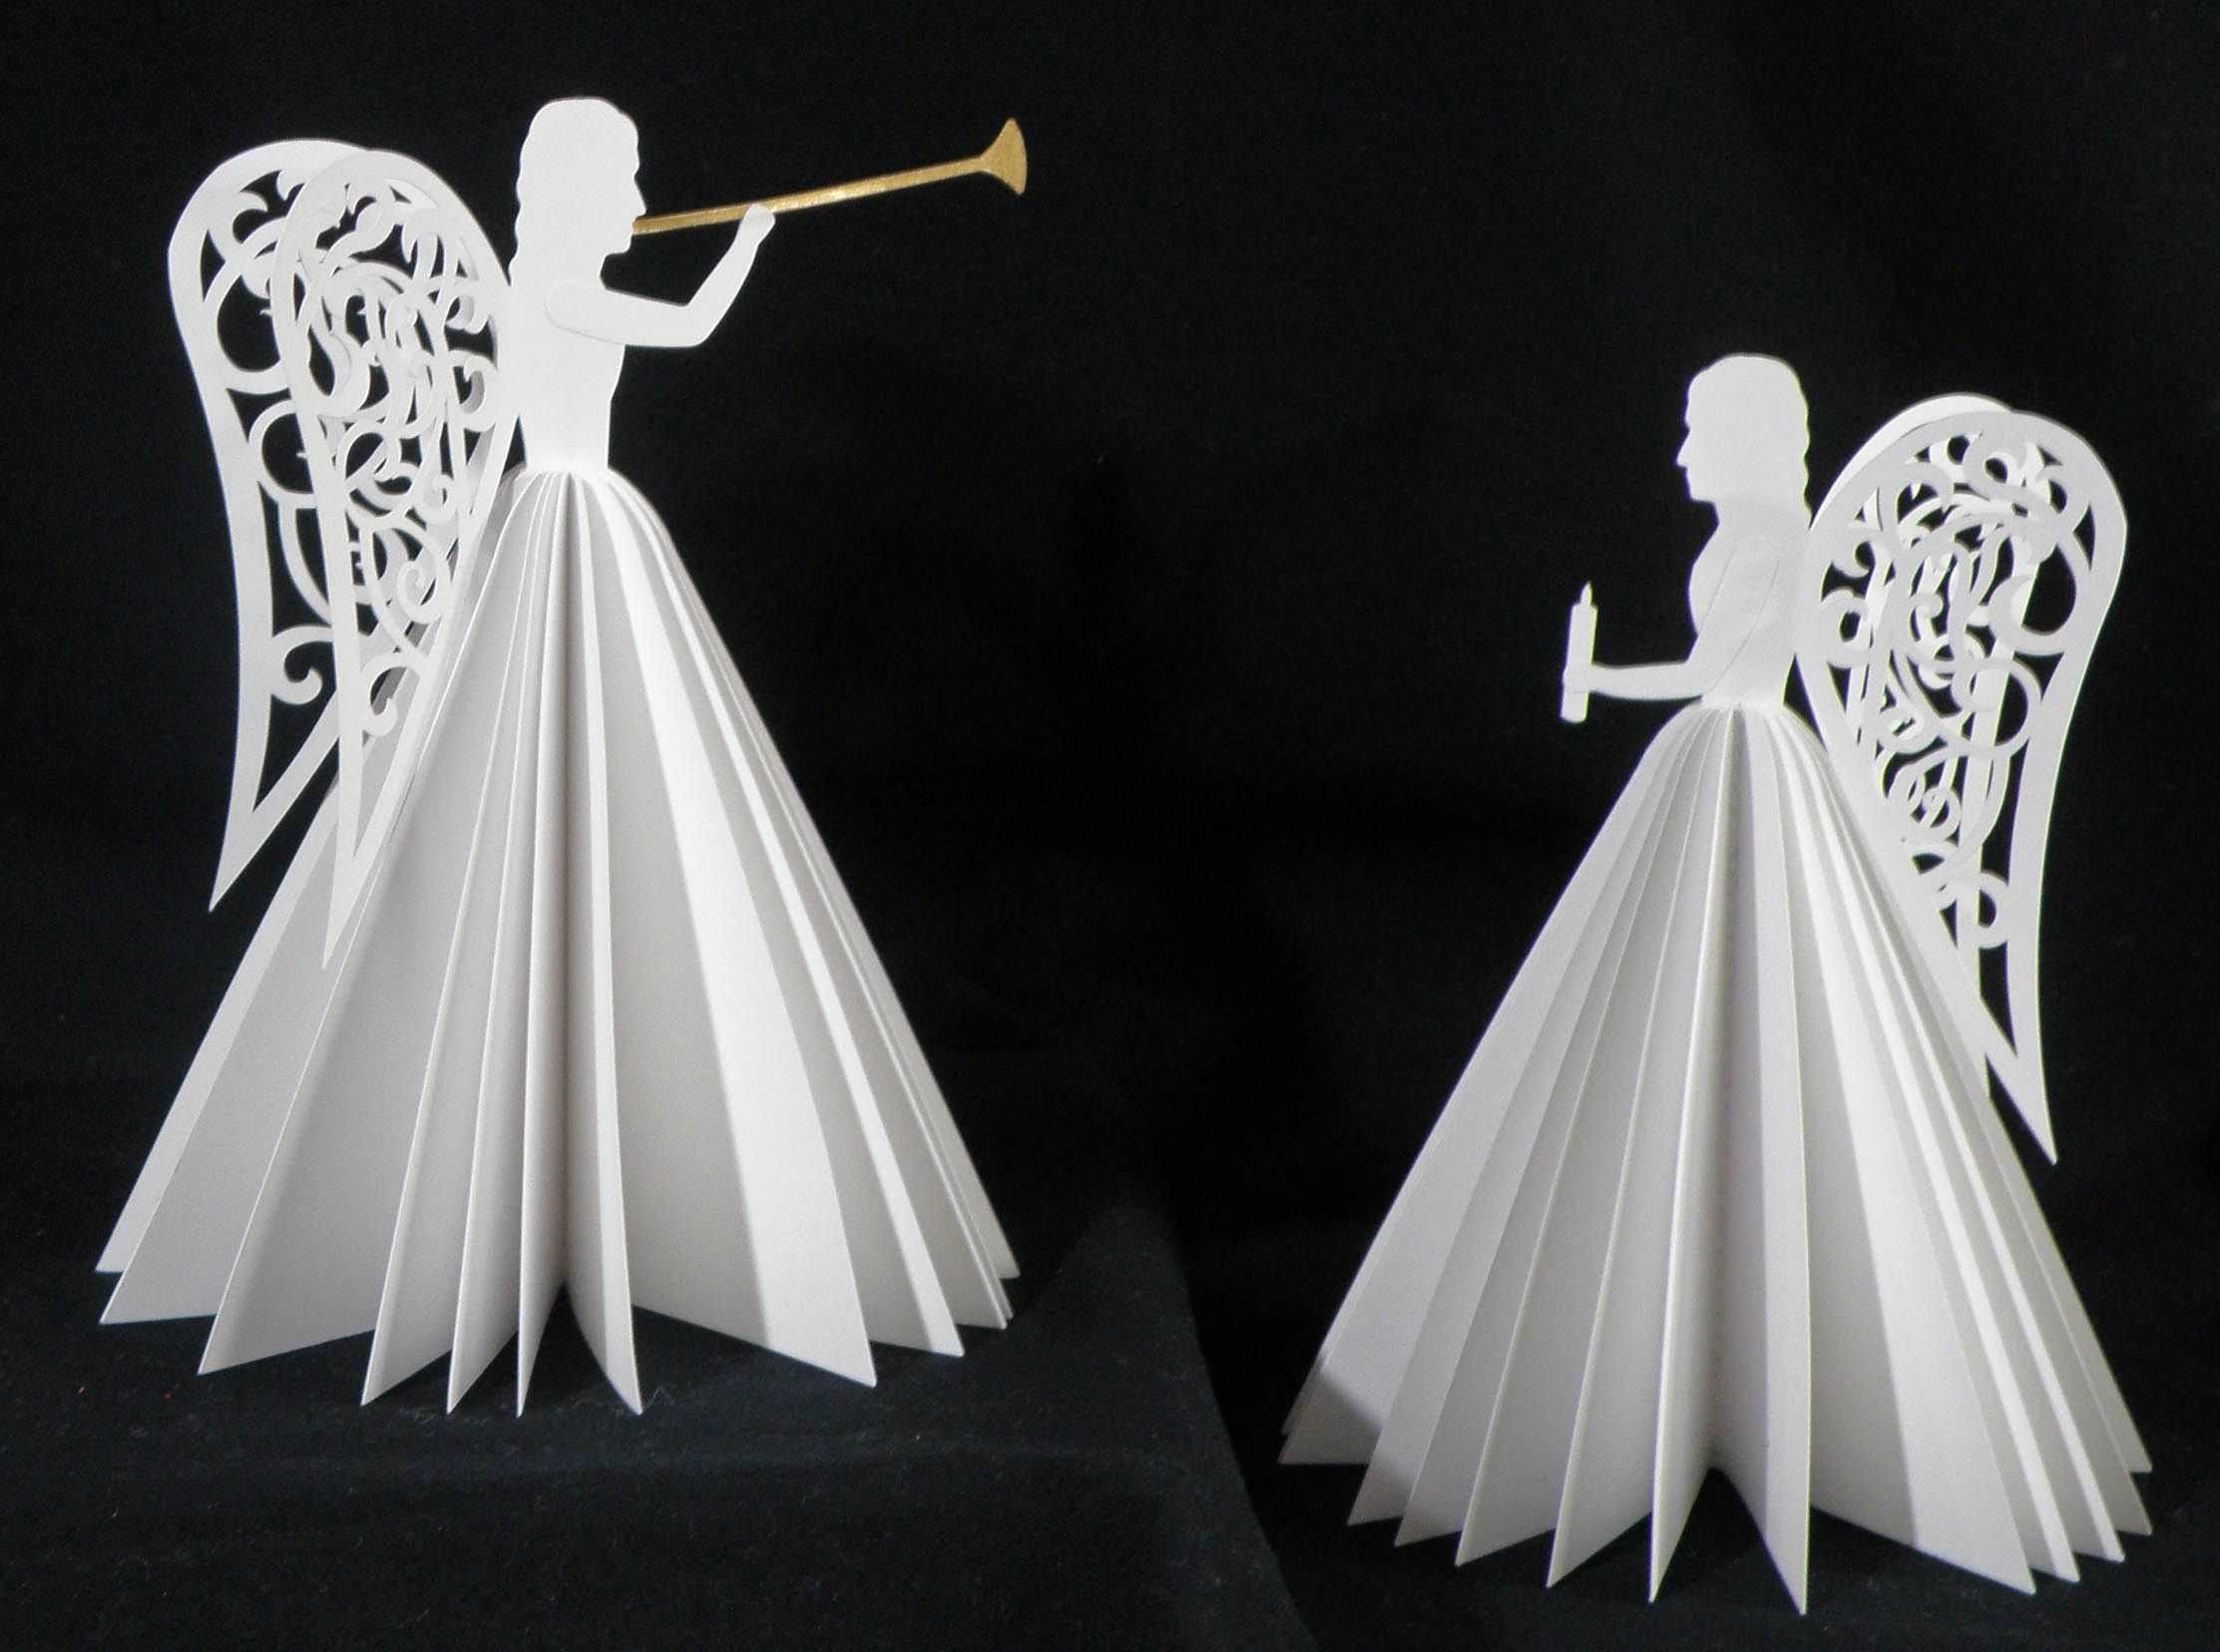 Paper angels teamknkteamknk projects to try pinterest paper angels teamknkteamknk jeuxipadfo Images